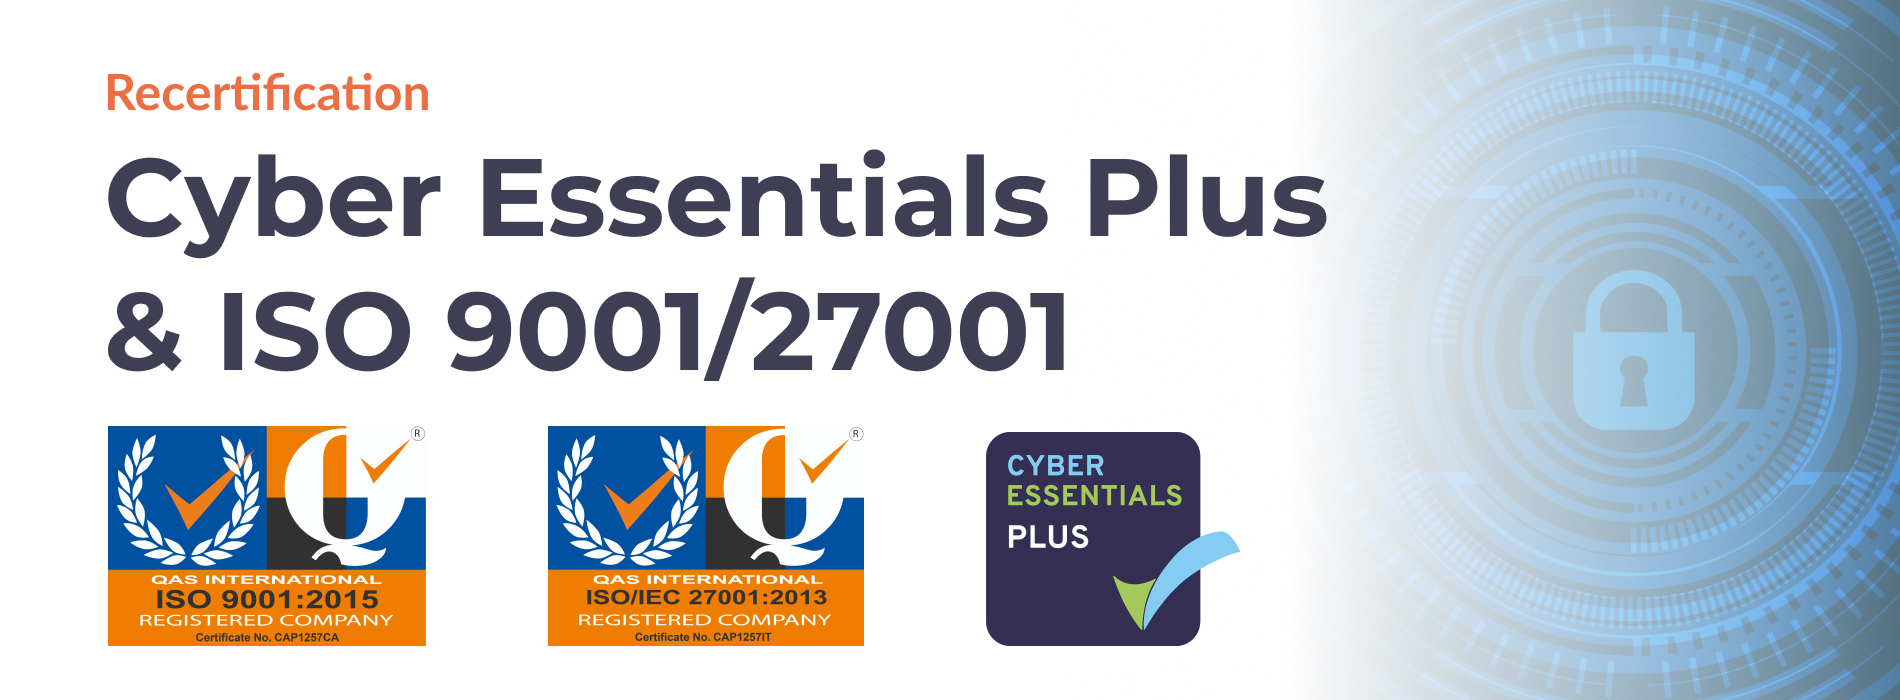 Cyber Essentials Plus & ISO 9001/27001 certification title